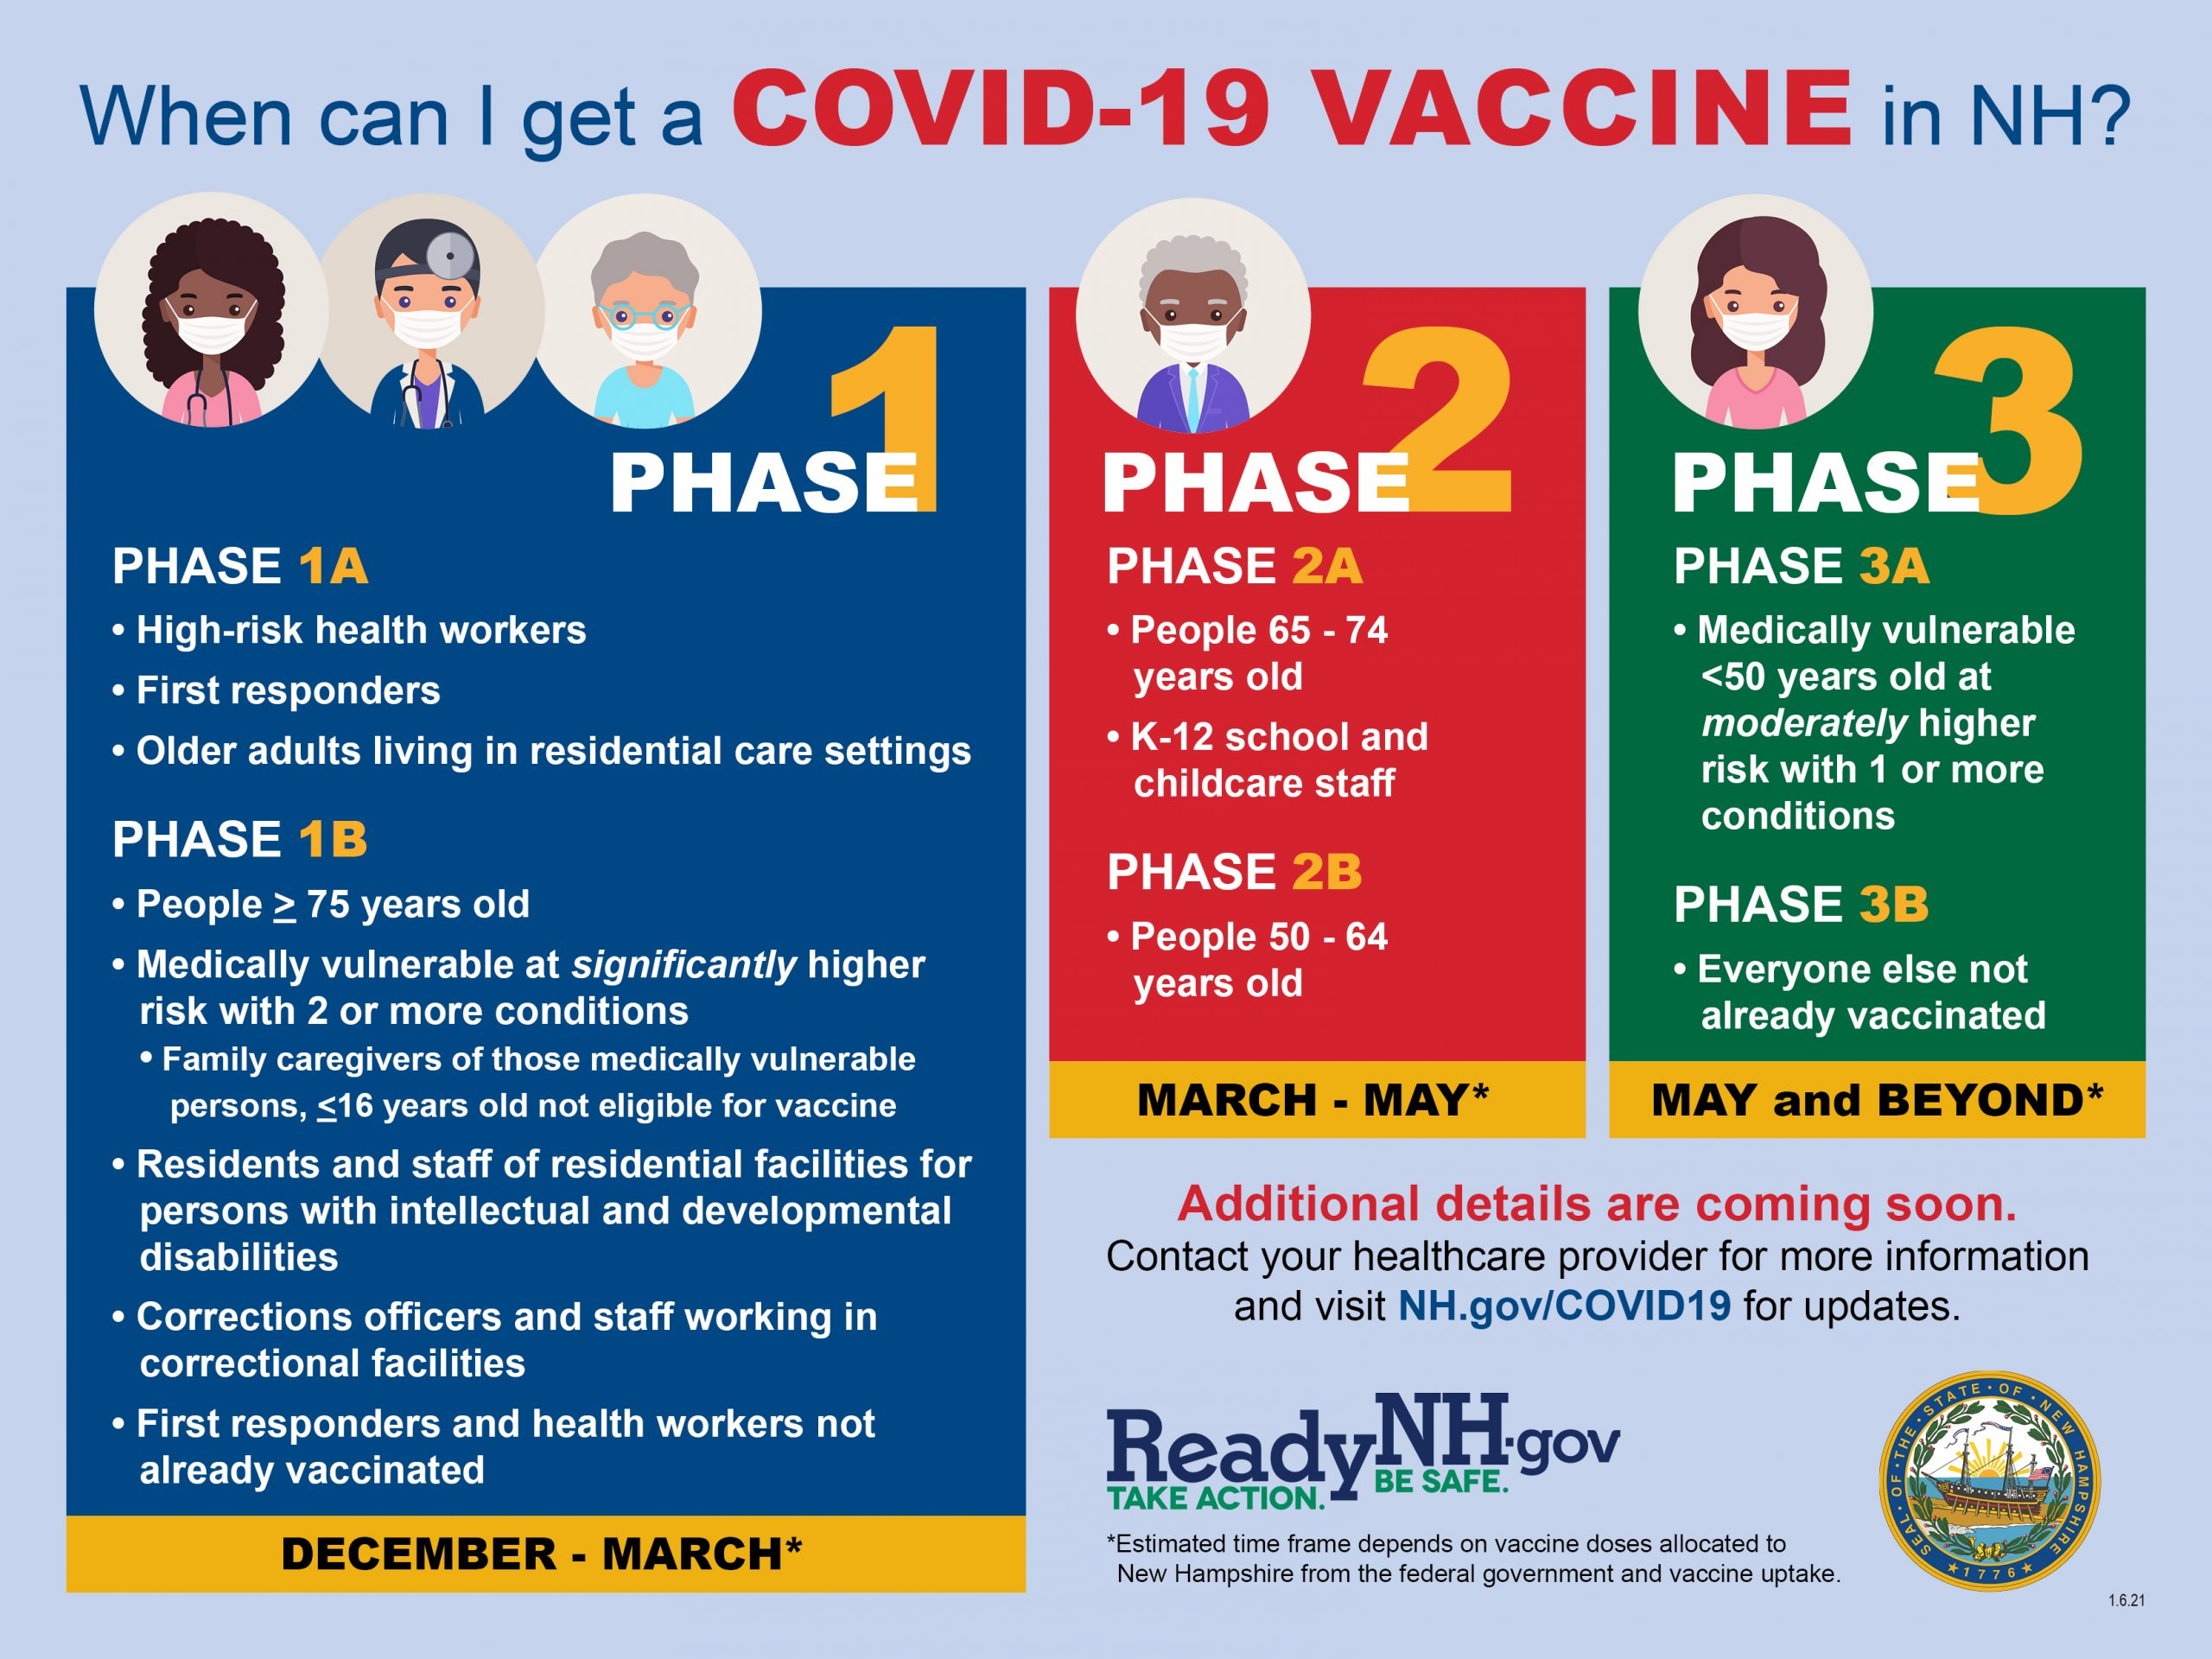 When Can I get a Covid-19 Vaccine in NH?